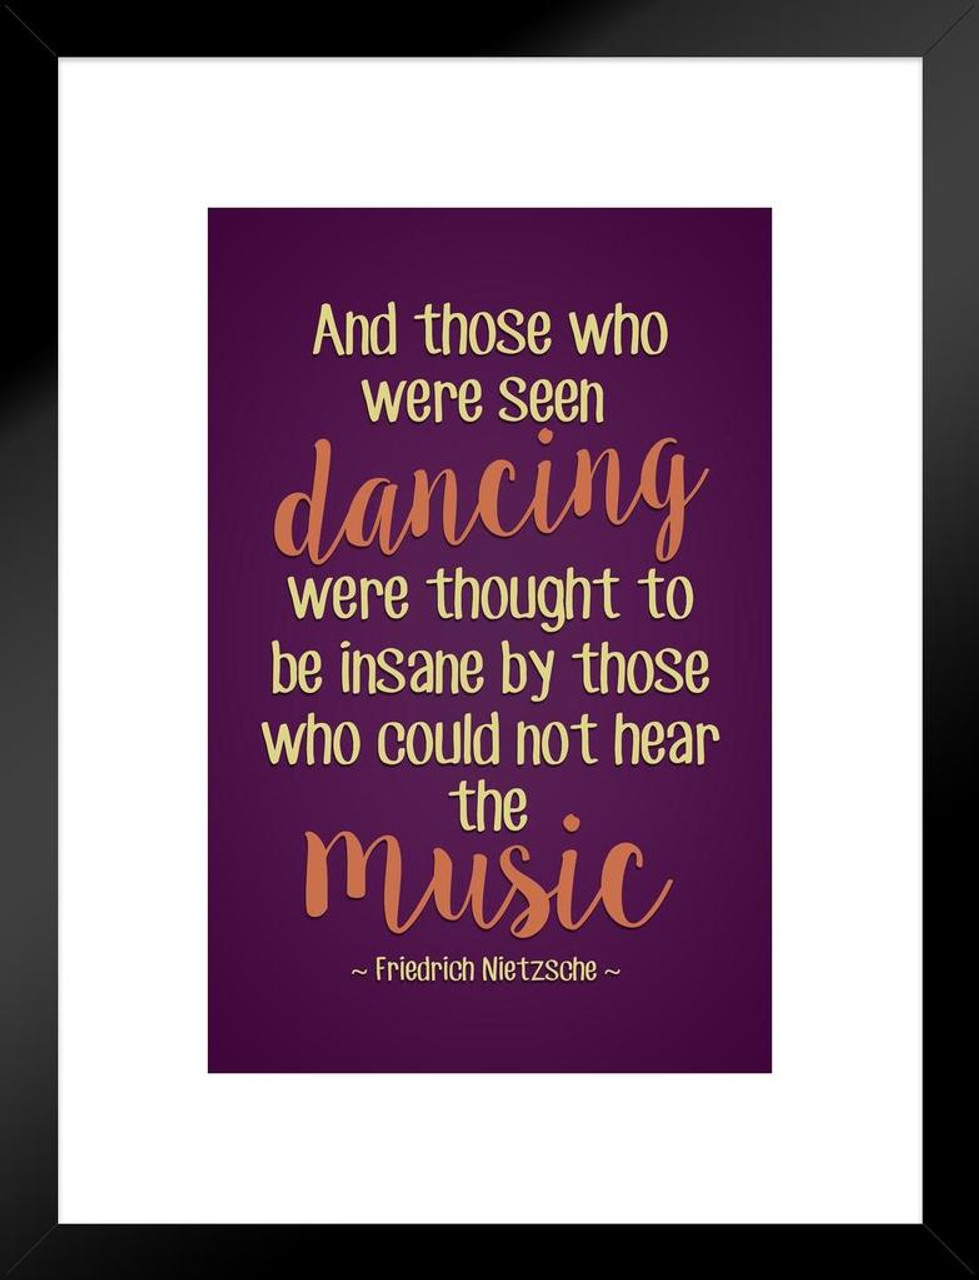 Friedrich Nietzsche And Those Who Were Seen Dancing Were Thought